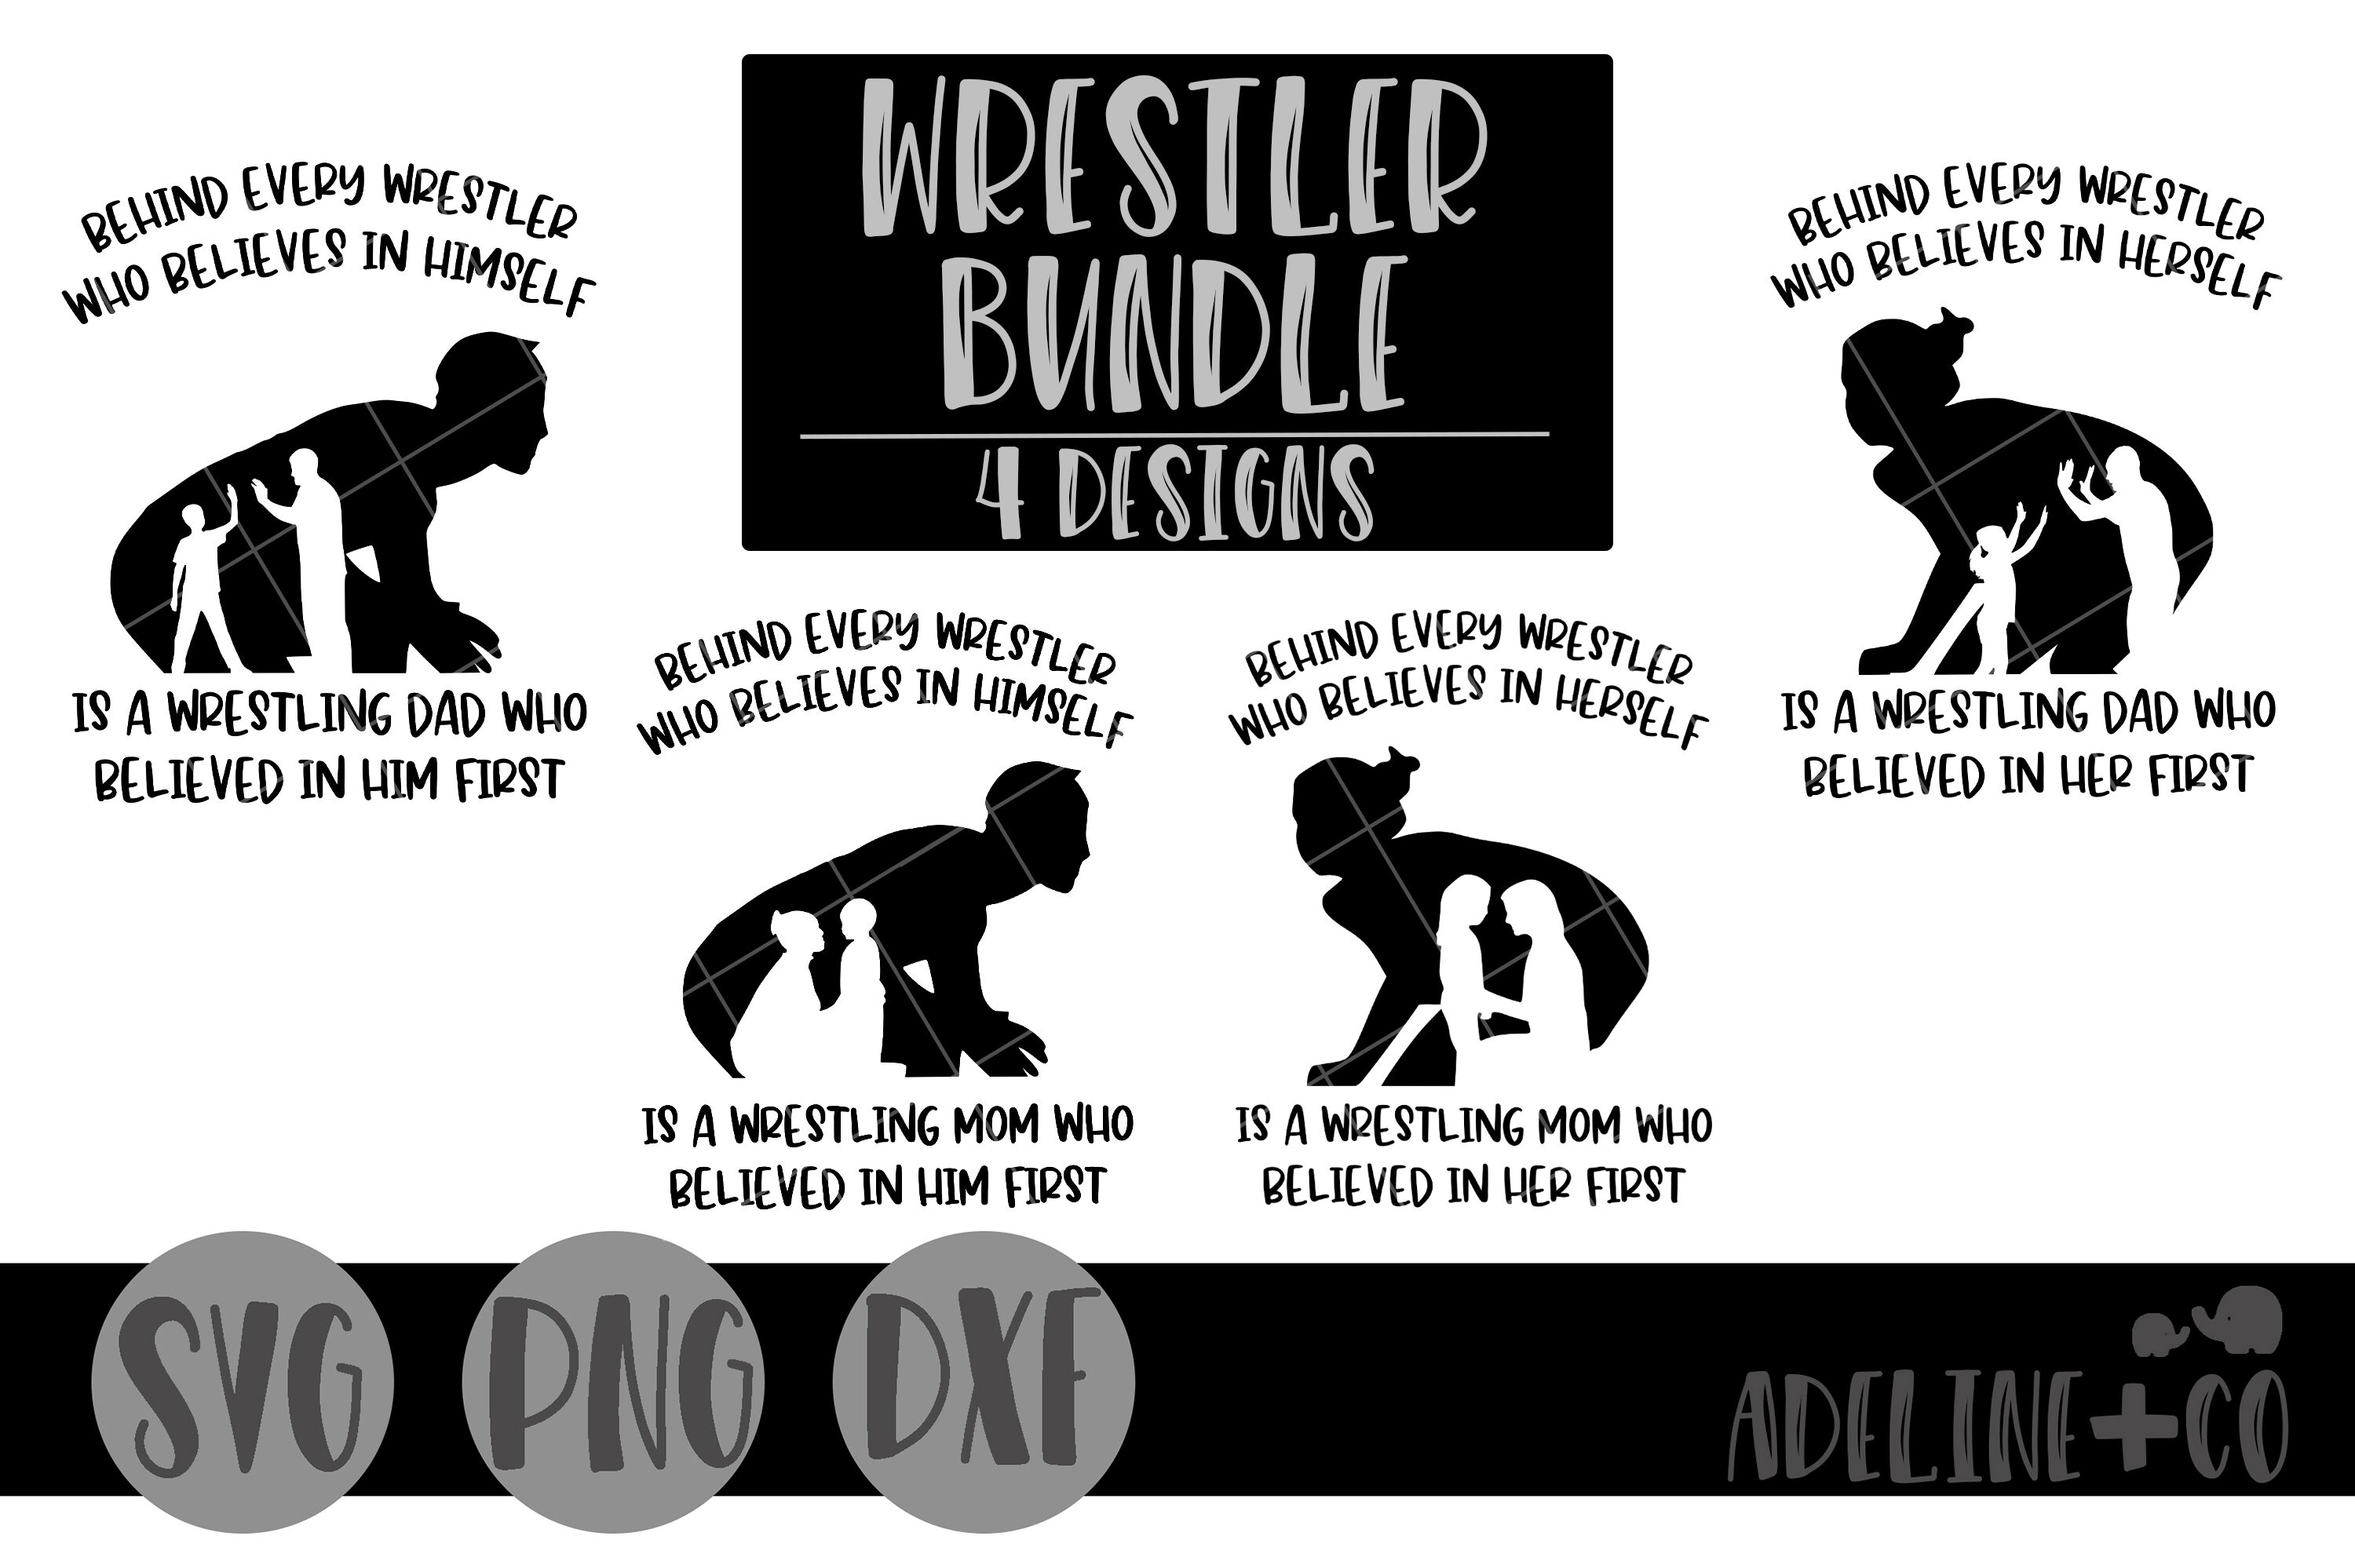 Behind Every Wrestler Svg Png Dxf Mom Dad Boy Girl By